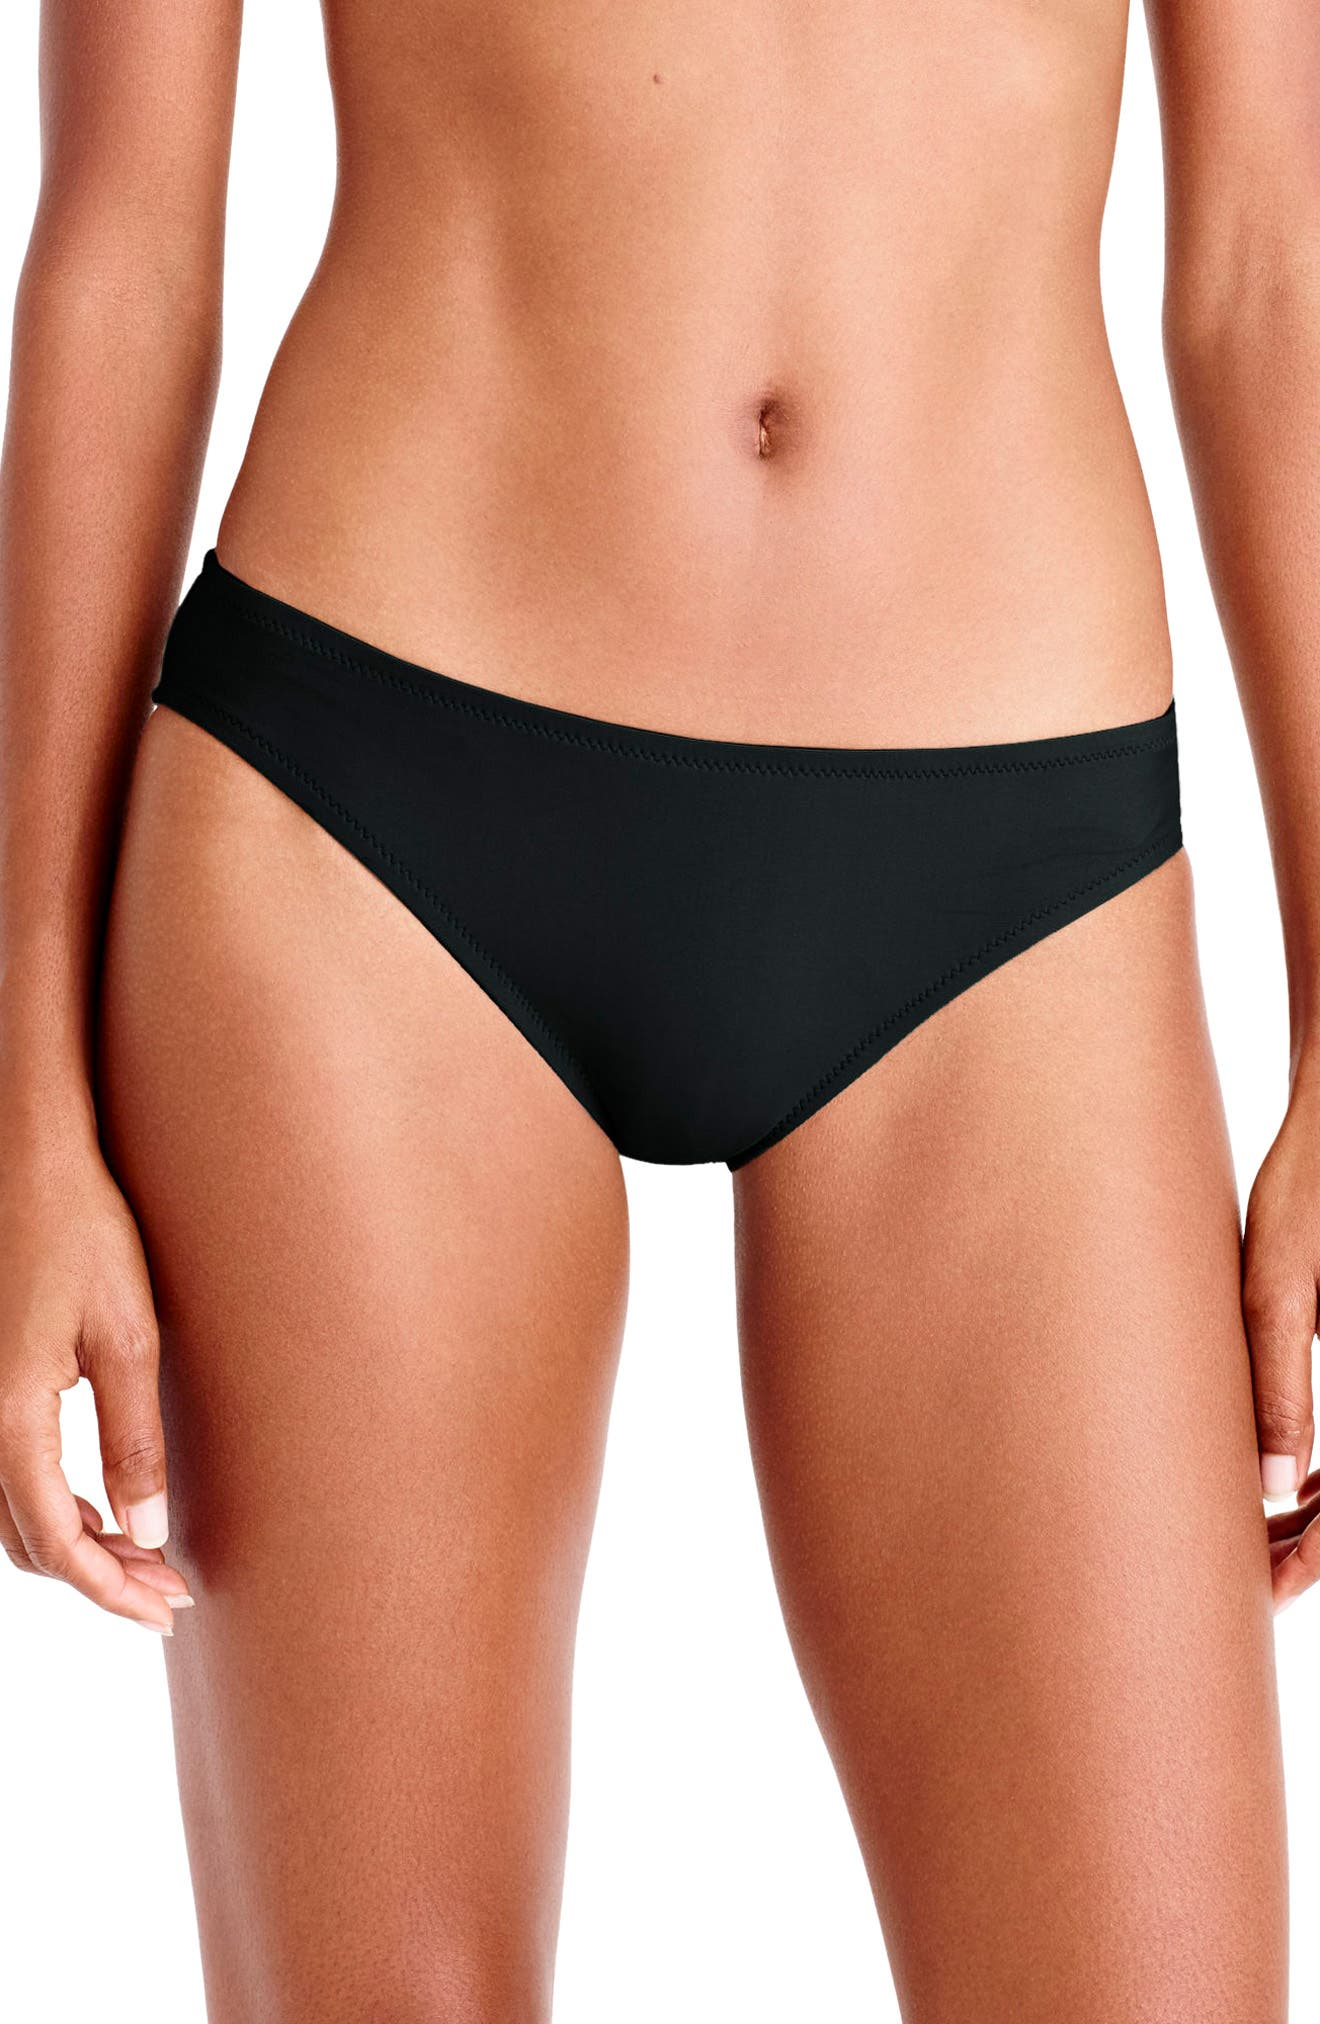 Alternate Image 1 Selected - J.Crew Bikini Bottoms